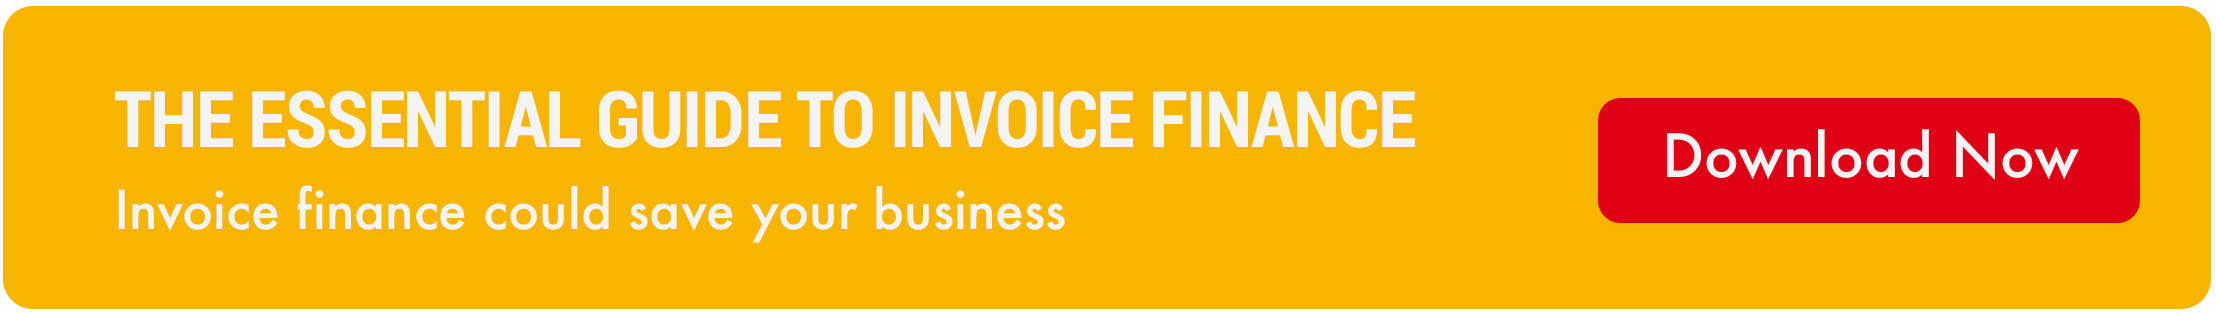 The Essential Guide to Invoice Finance eBook banner